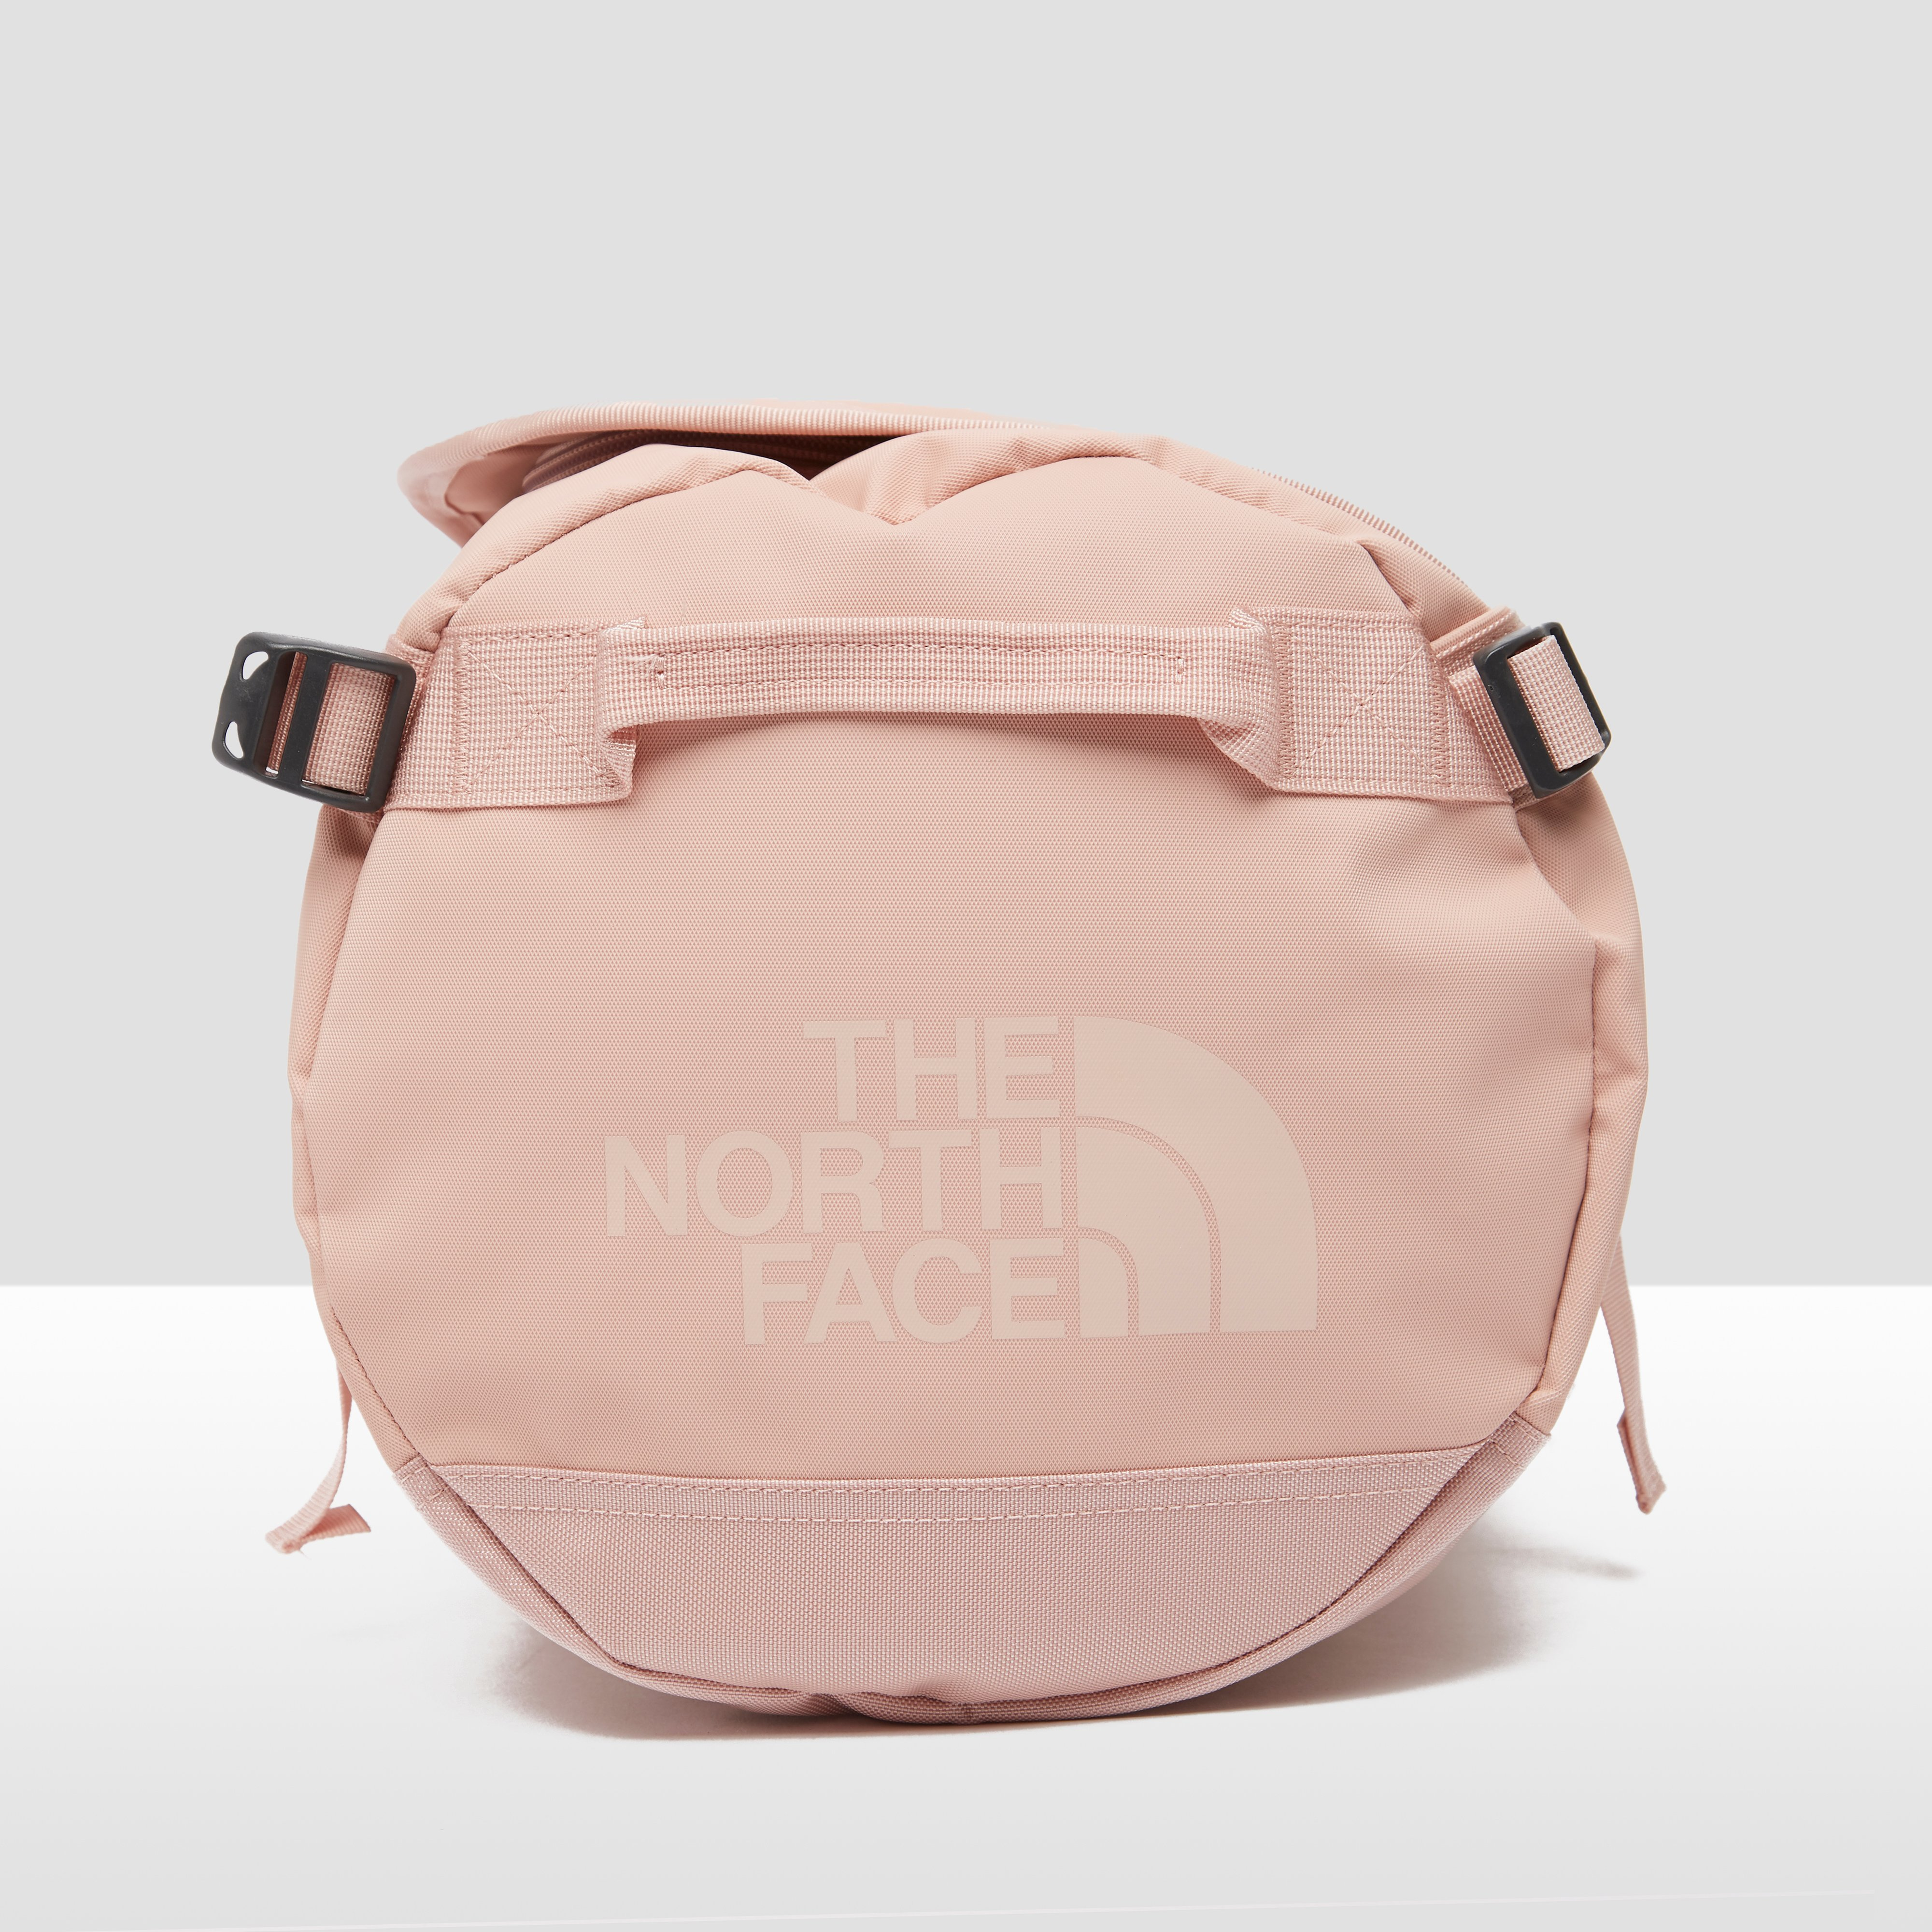 THE NORTH FACE BASE CAMP DUFFEL TRAVELBAG EXTRA SMALL ROZE